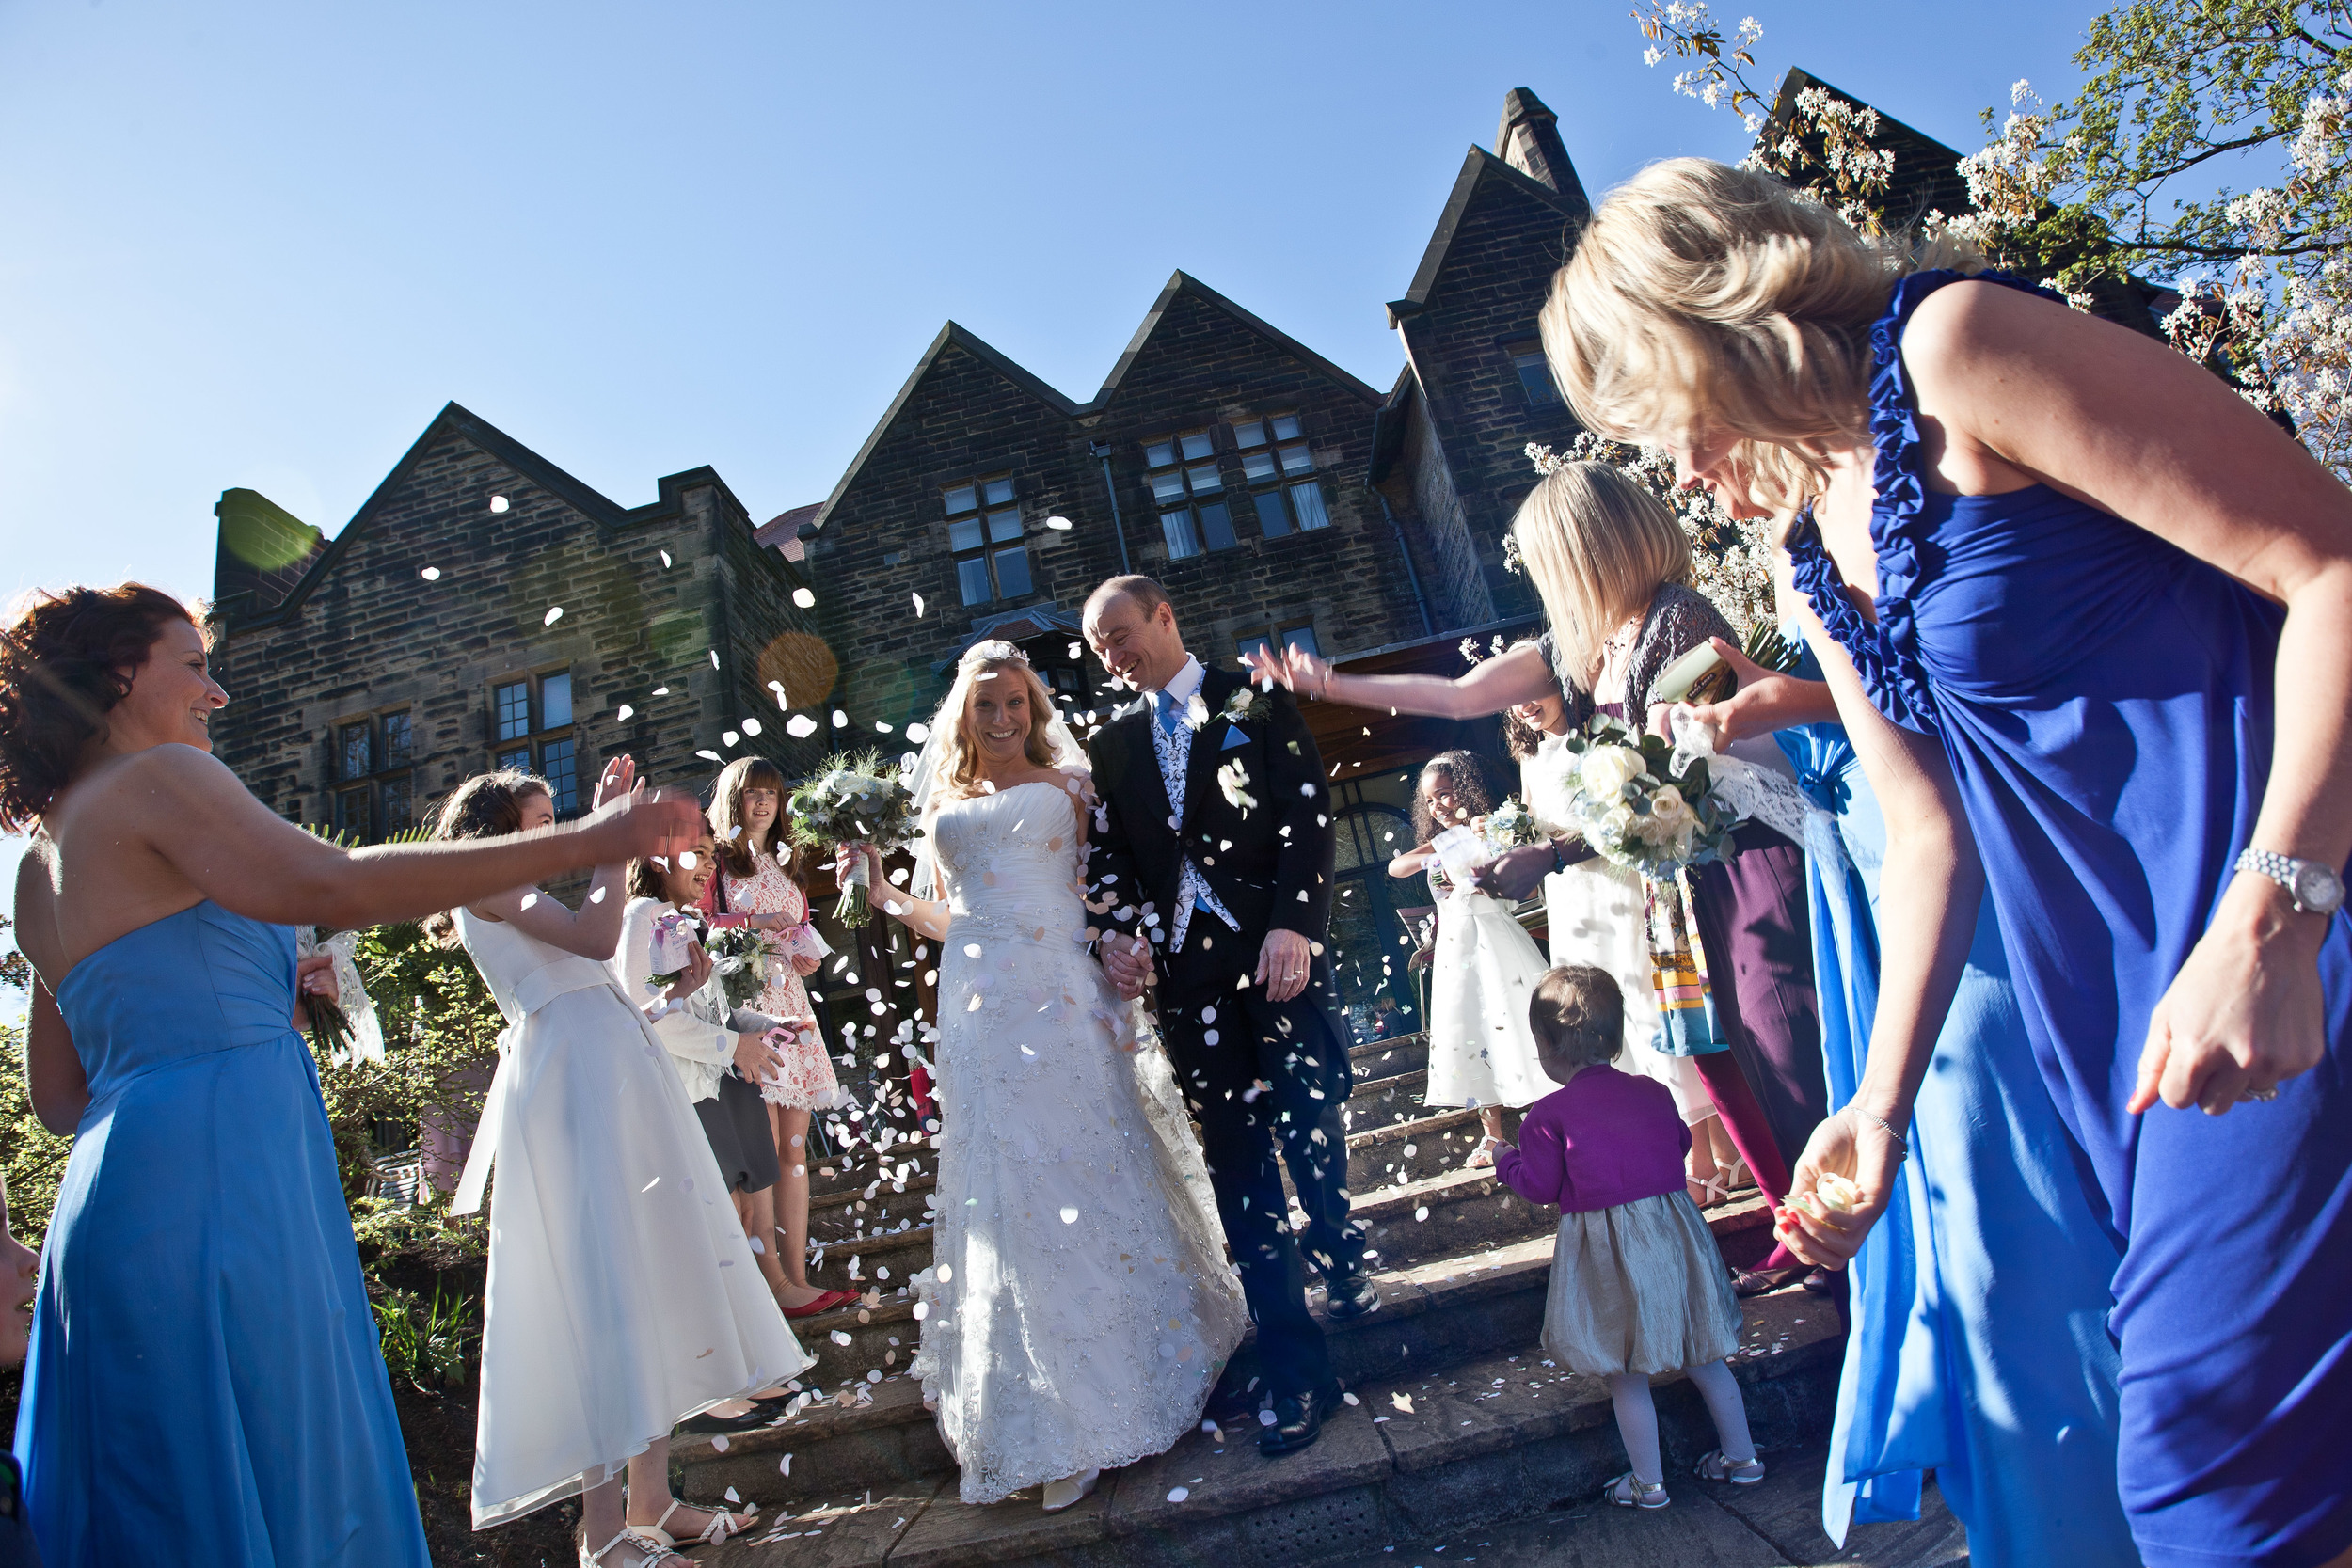 Jesmond Dene House - a great place for wedding photography